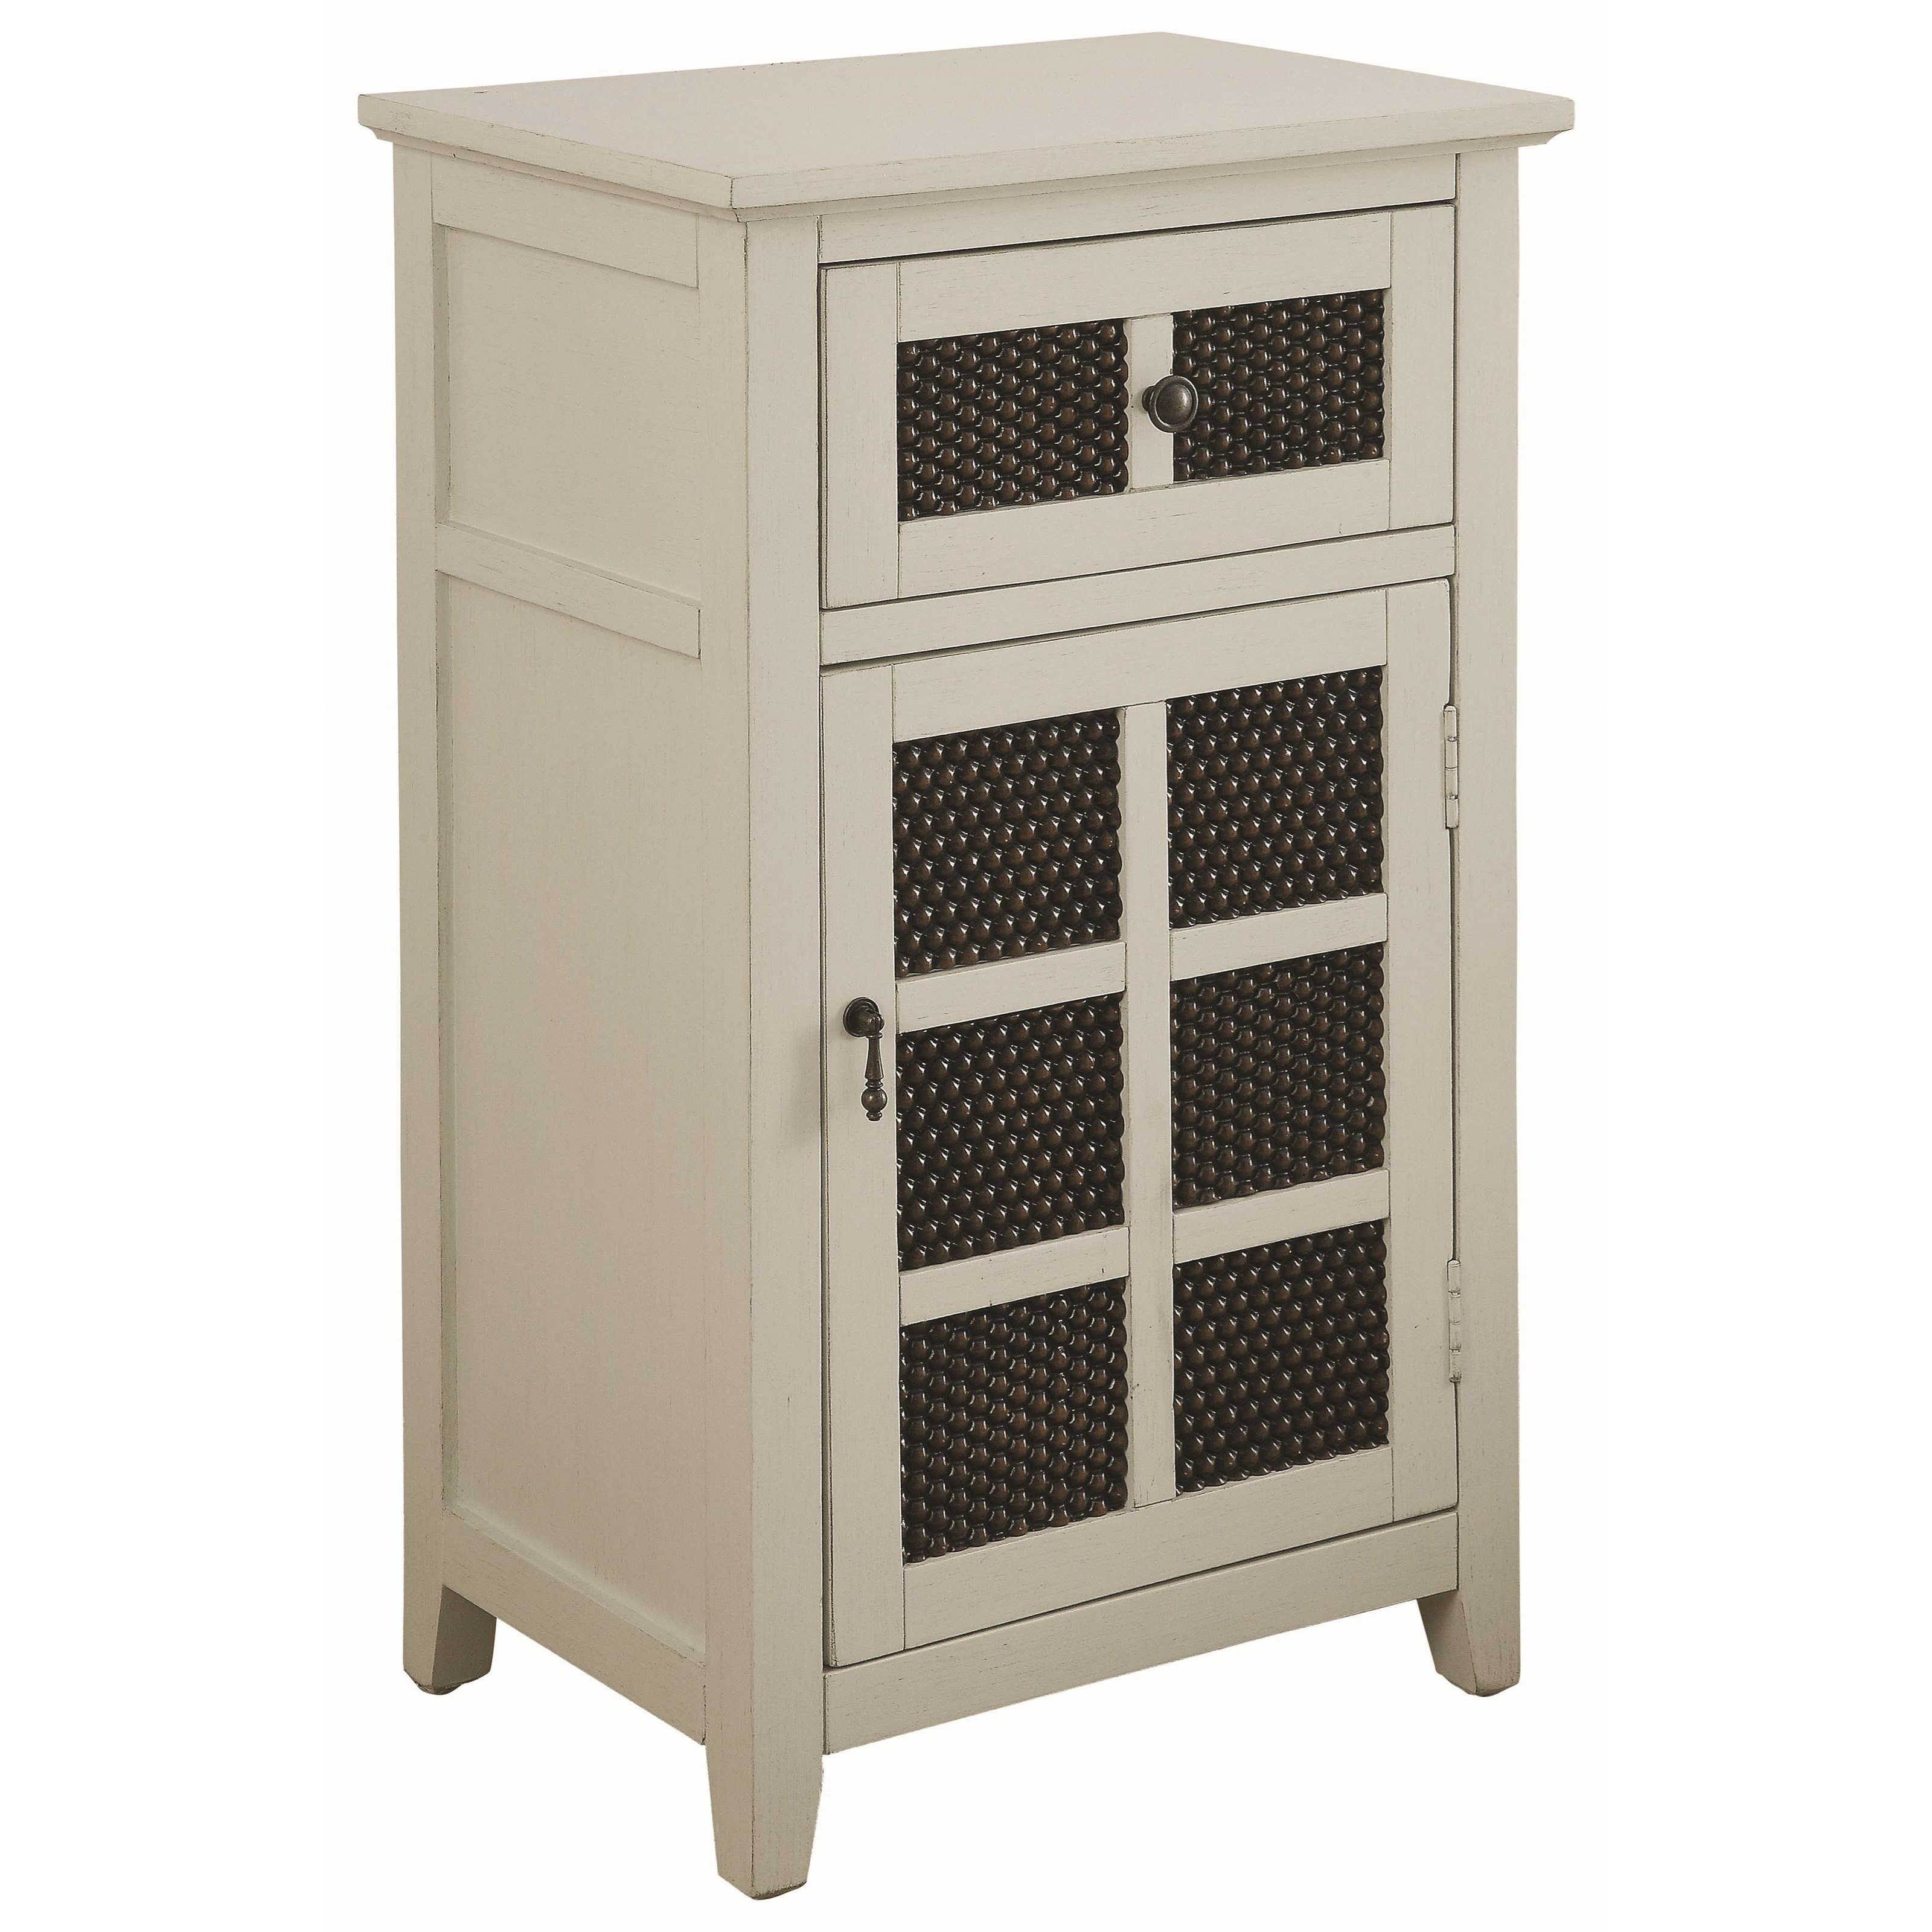 Coaster Accent Cabinets Cabinet - Item Number: 901503